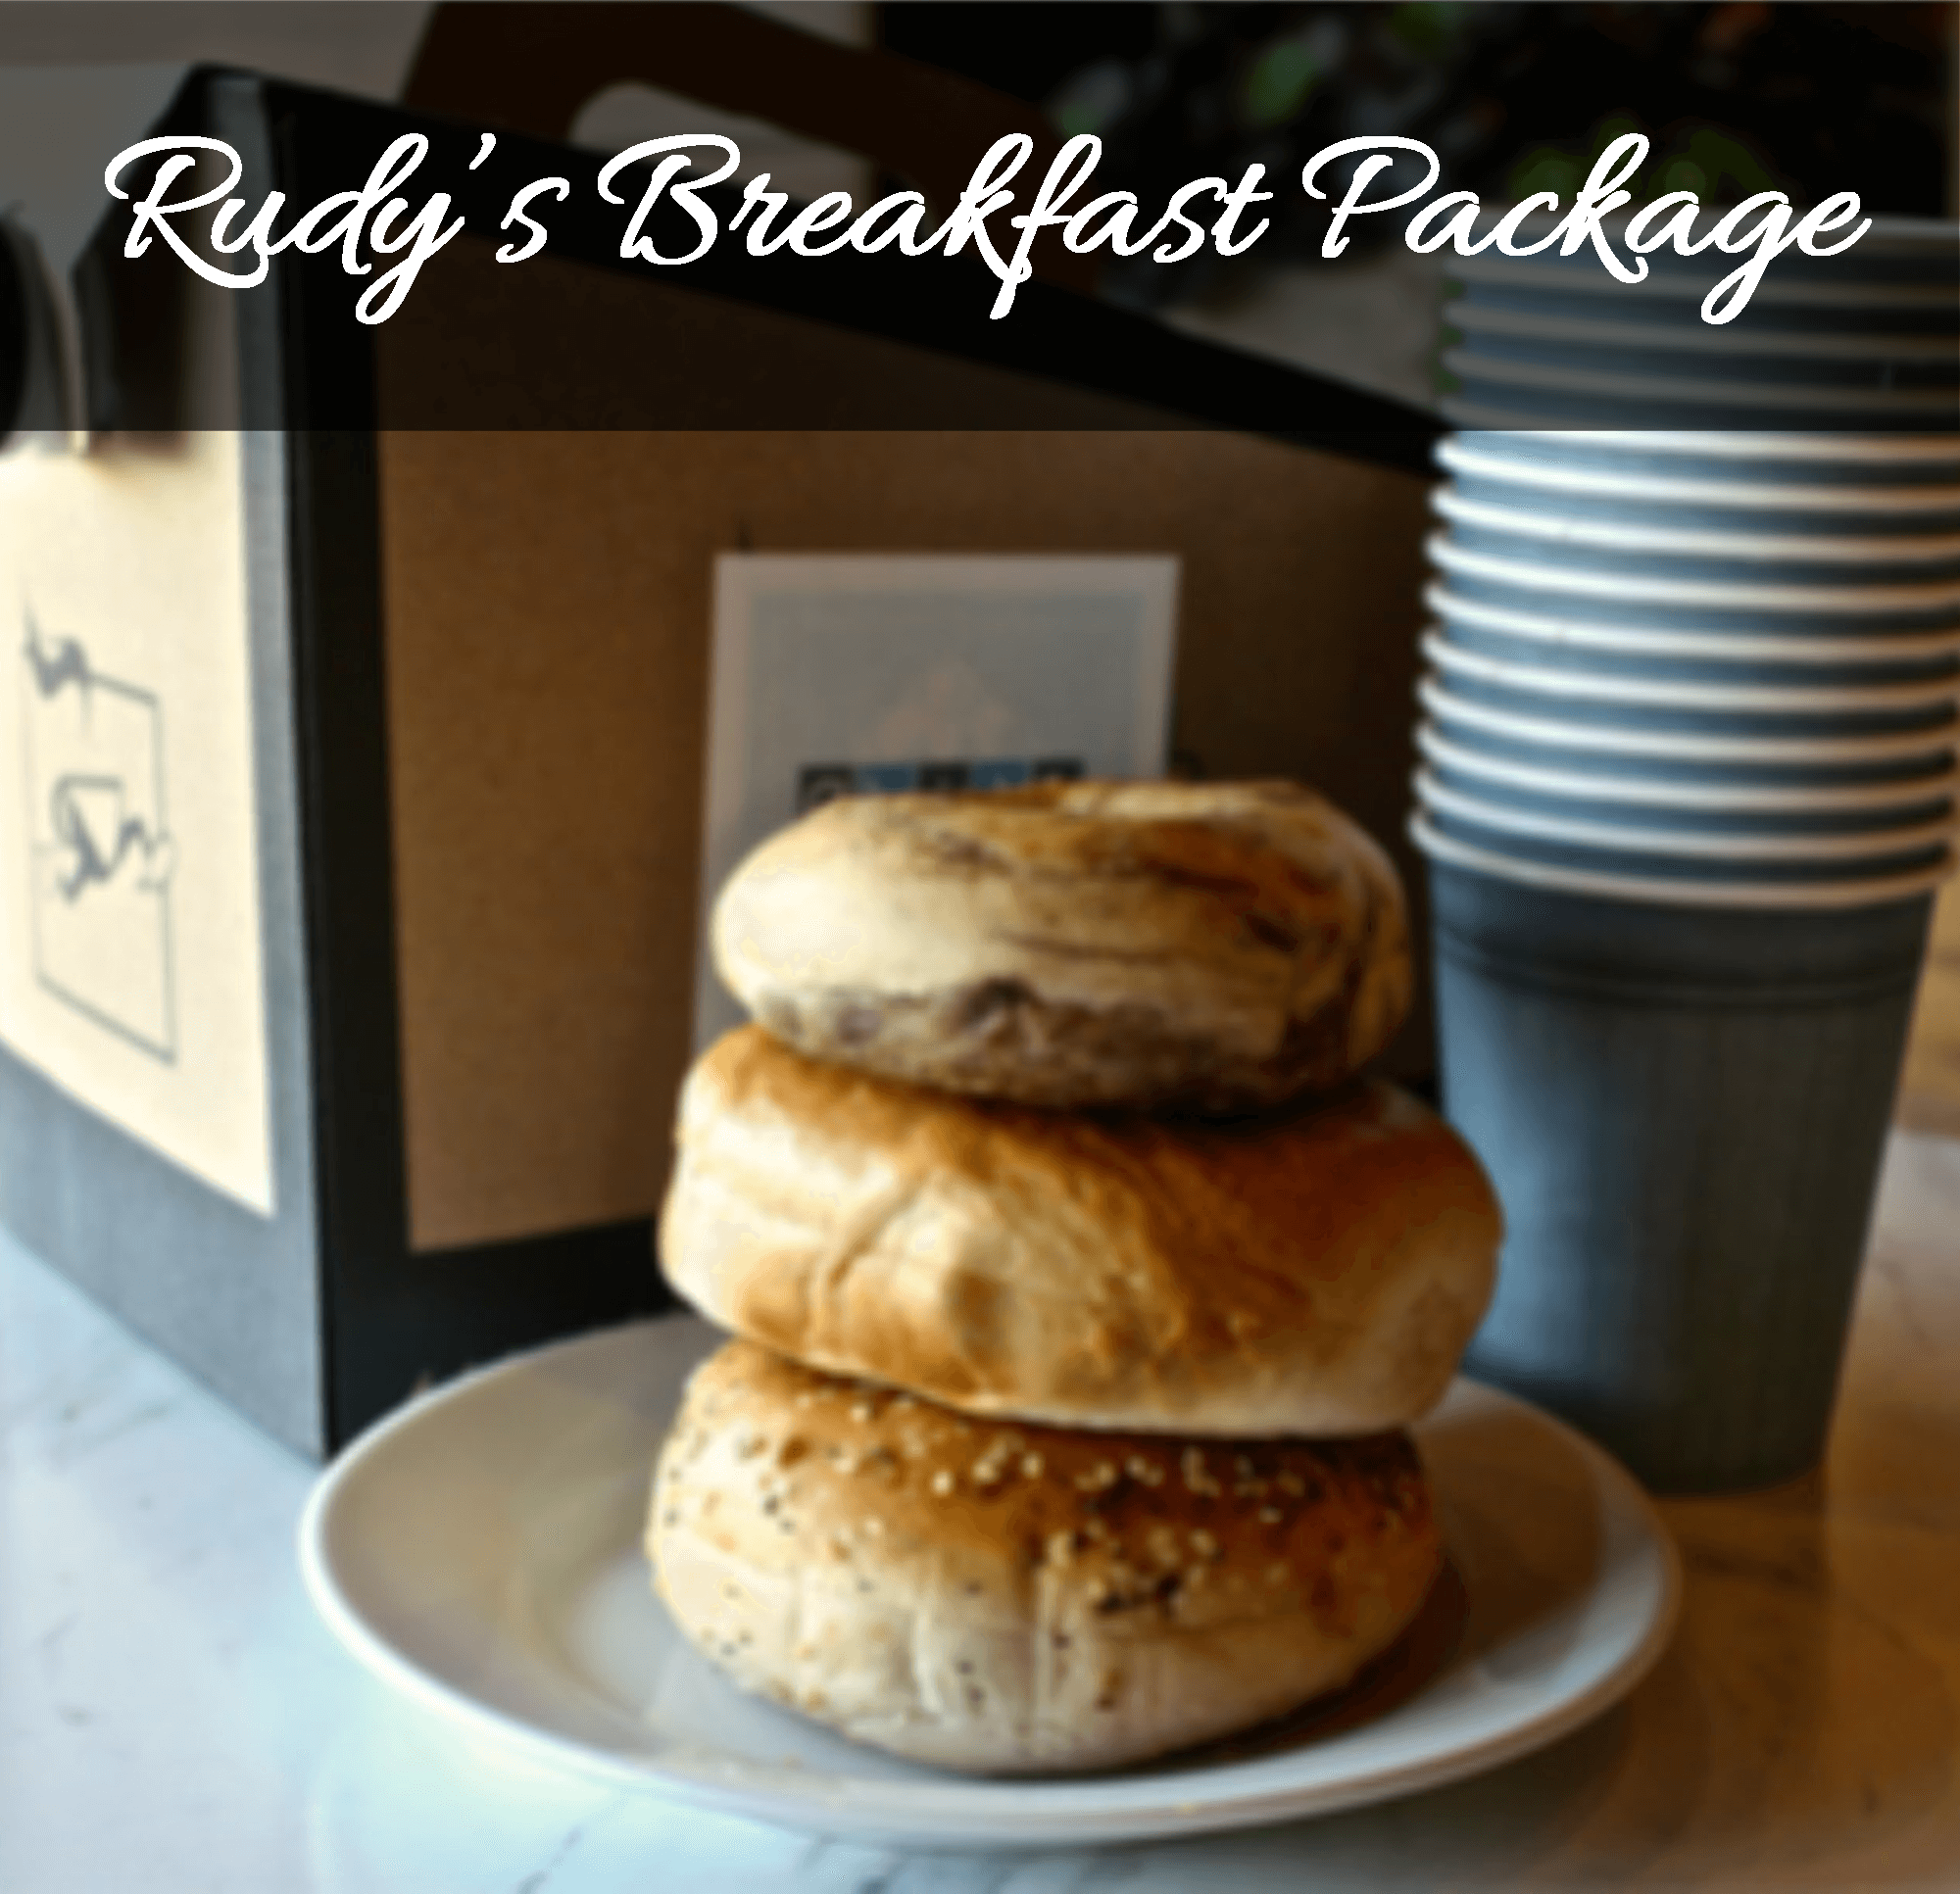 Catering_Menus - Rudys-Breakfast-Package.png